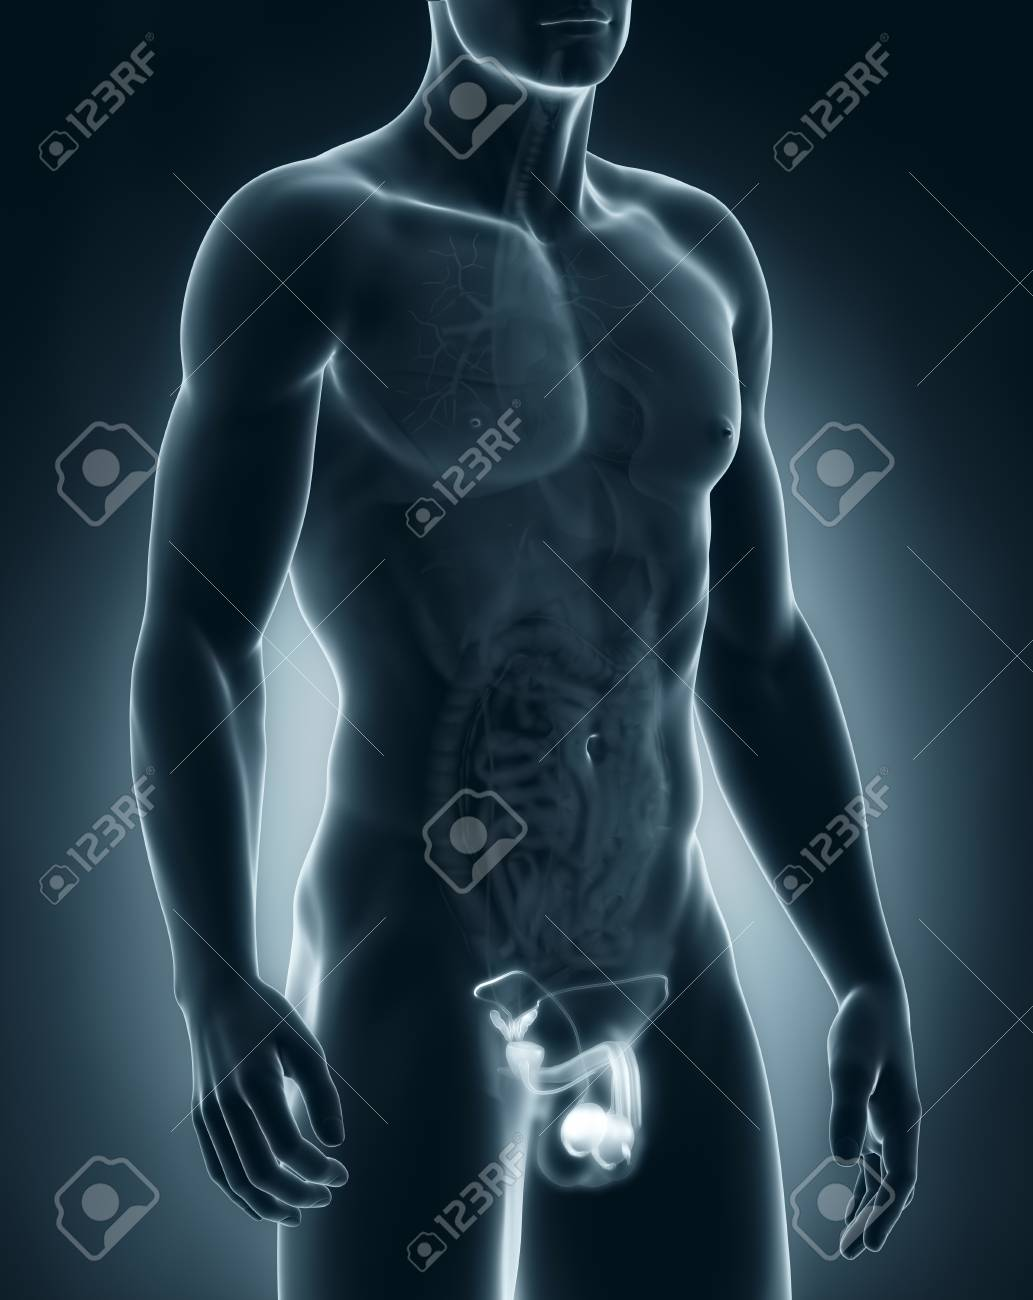 Male Genitalia Anatomy Stock Photo Picture And Royalty Free Image